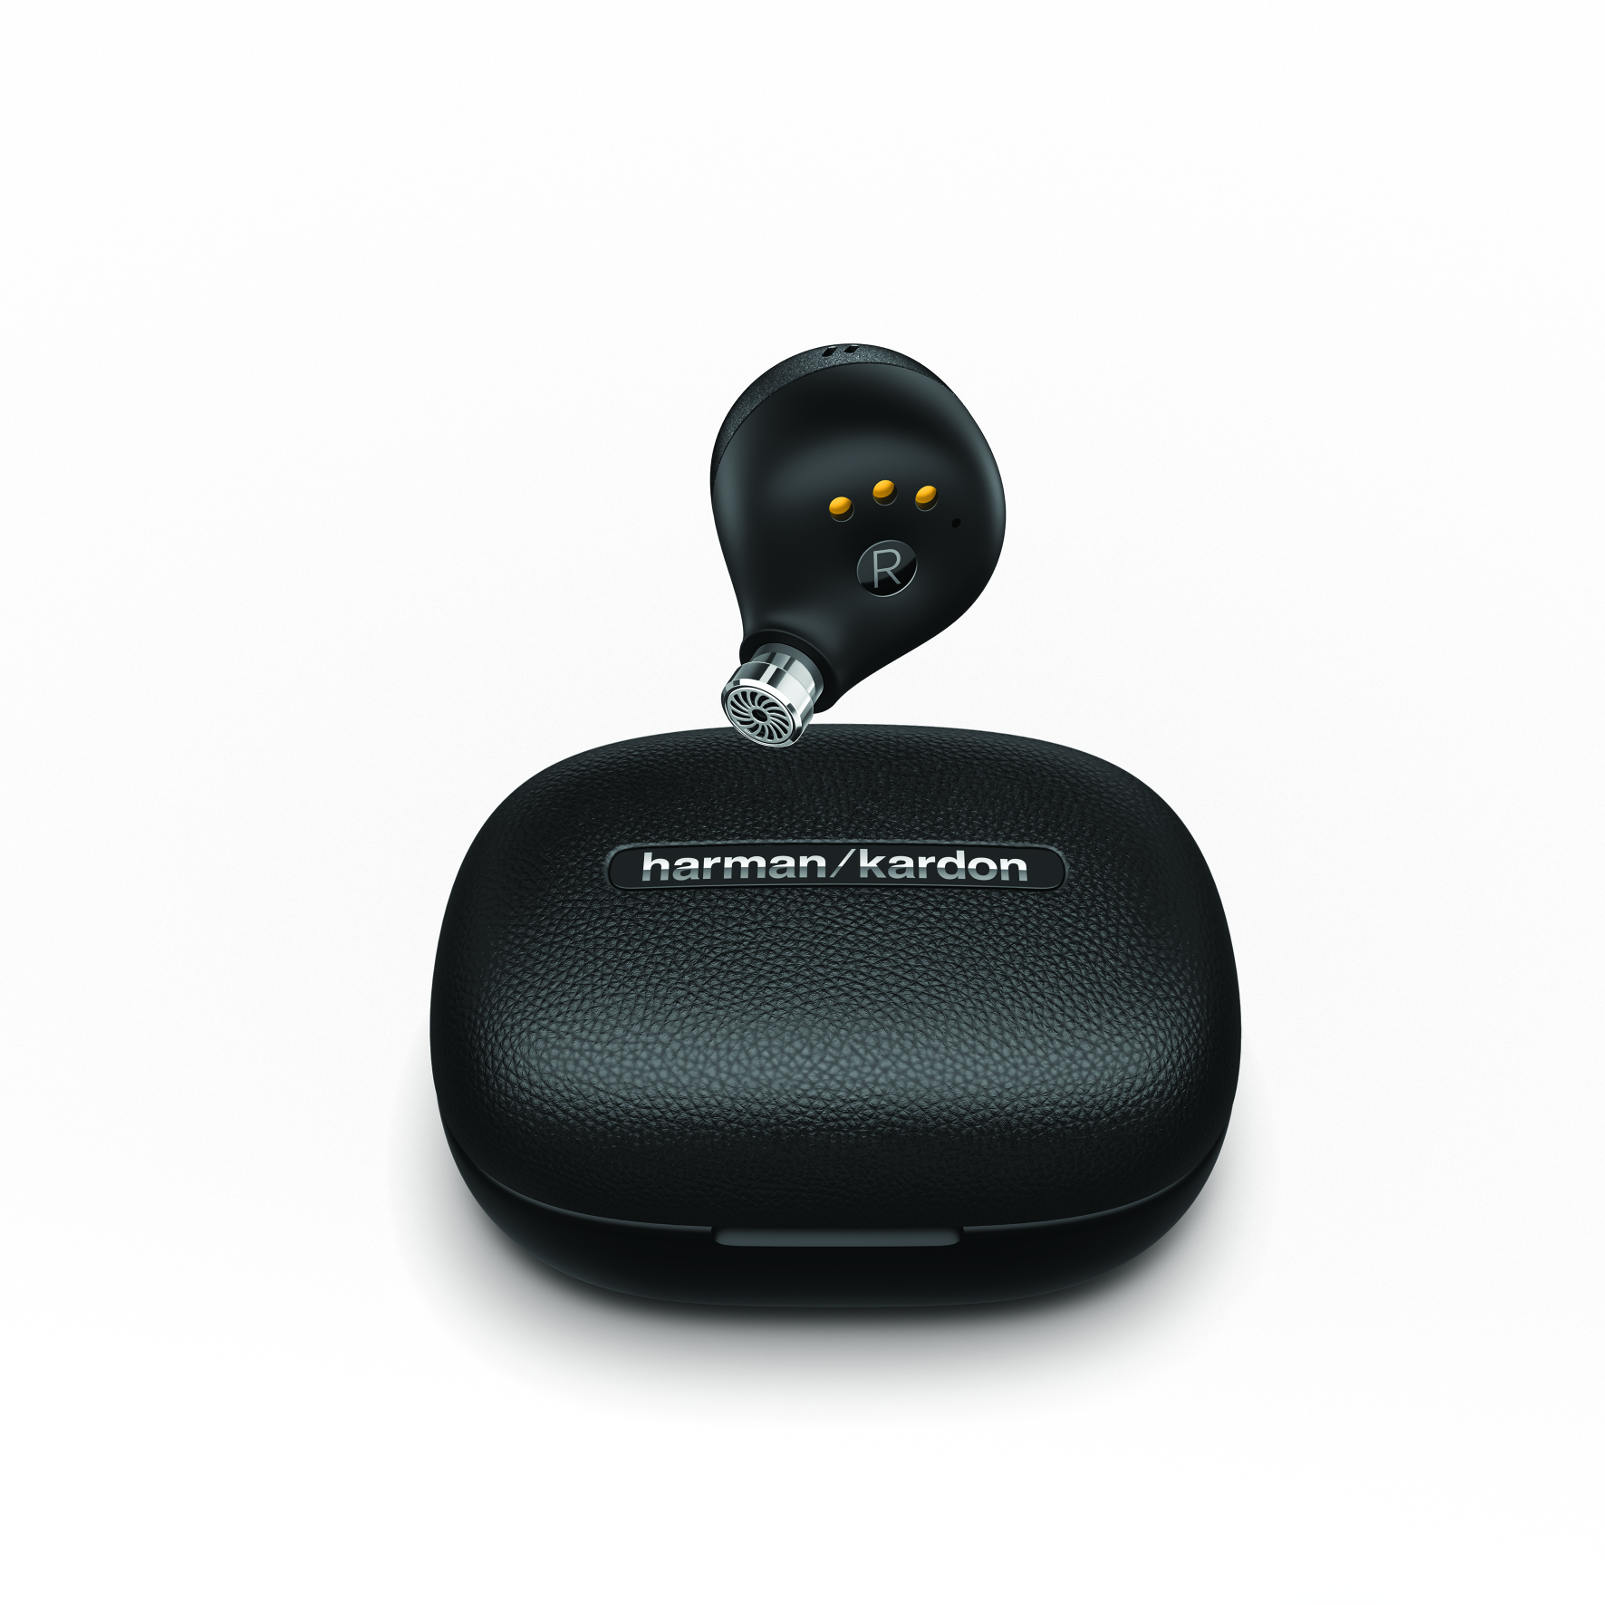 Harman Kardon FLY TWS - Black - True Wireless in-ear headphones - Back